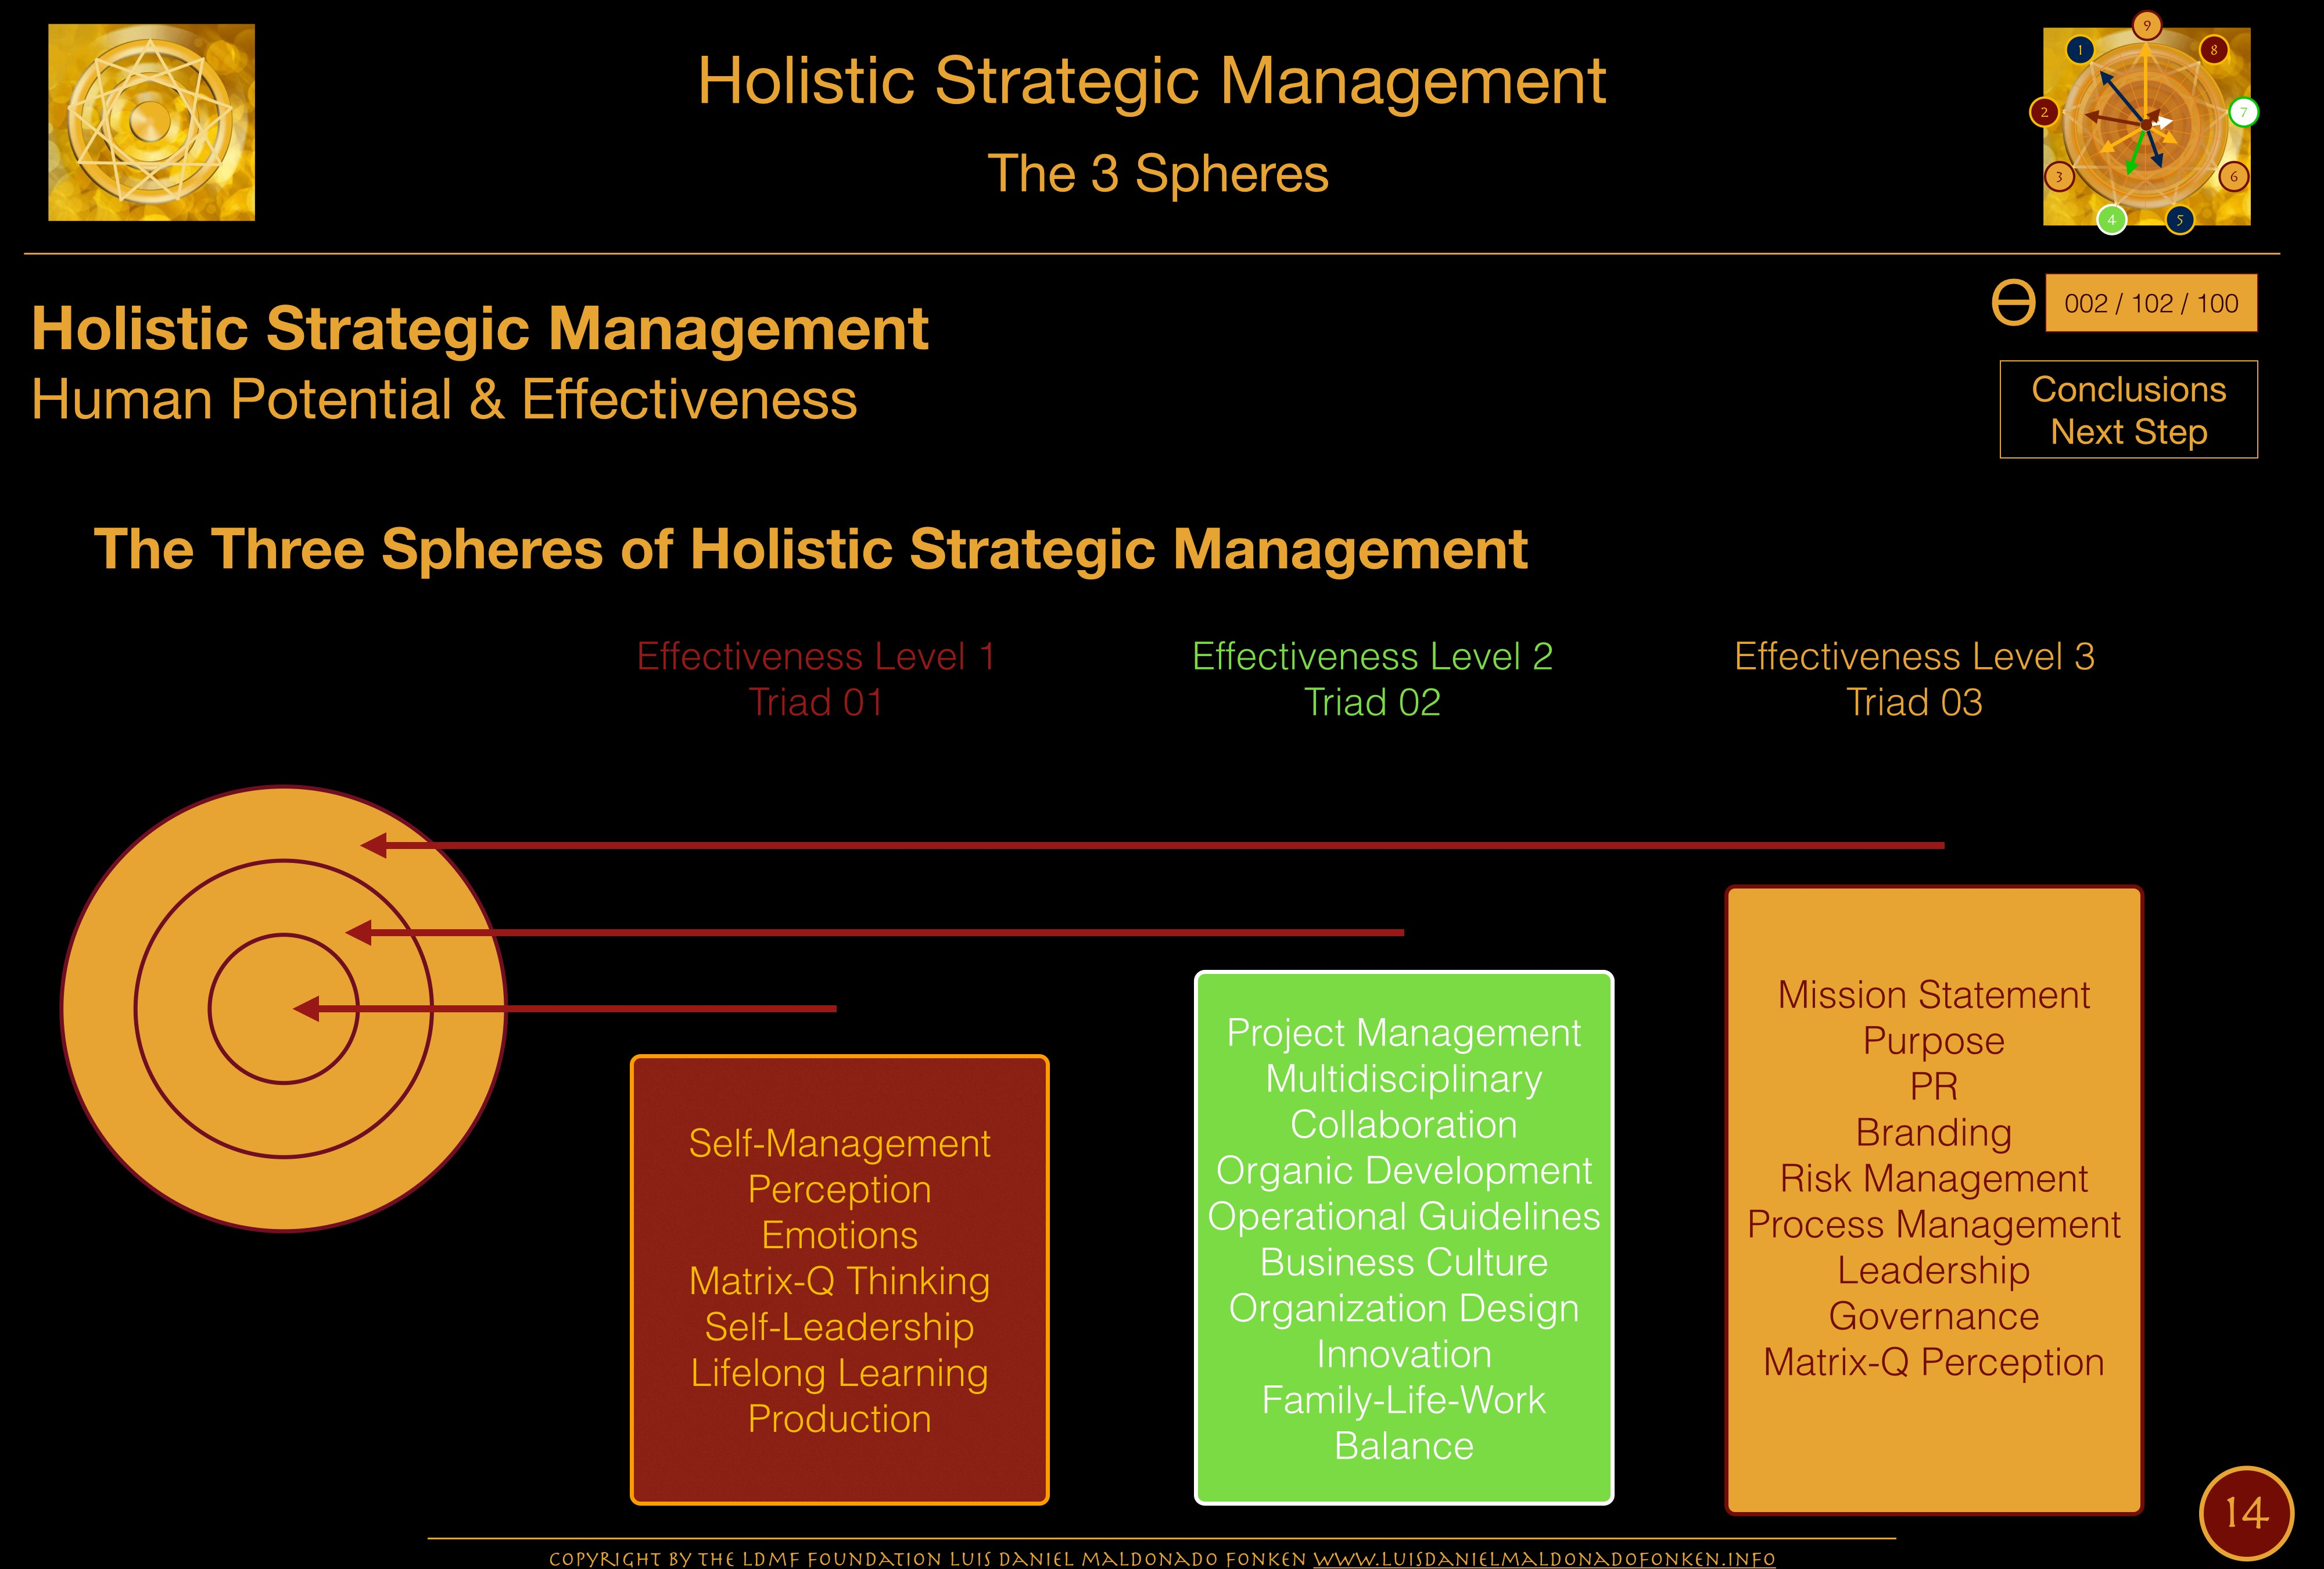 strategic management tutorial A good strategic management course offers strategy management training enhanced with leadership training effective leadership skills are an invaluable asset to all aspects of your career and an absolute must for effective implementation and execution of any strategy.